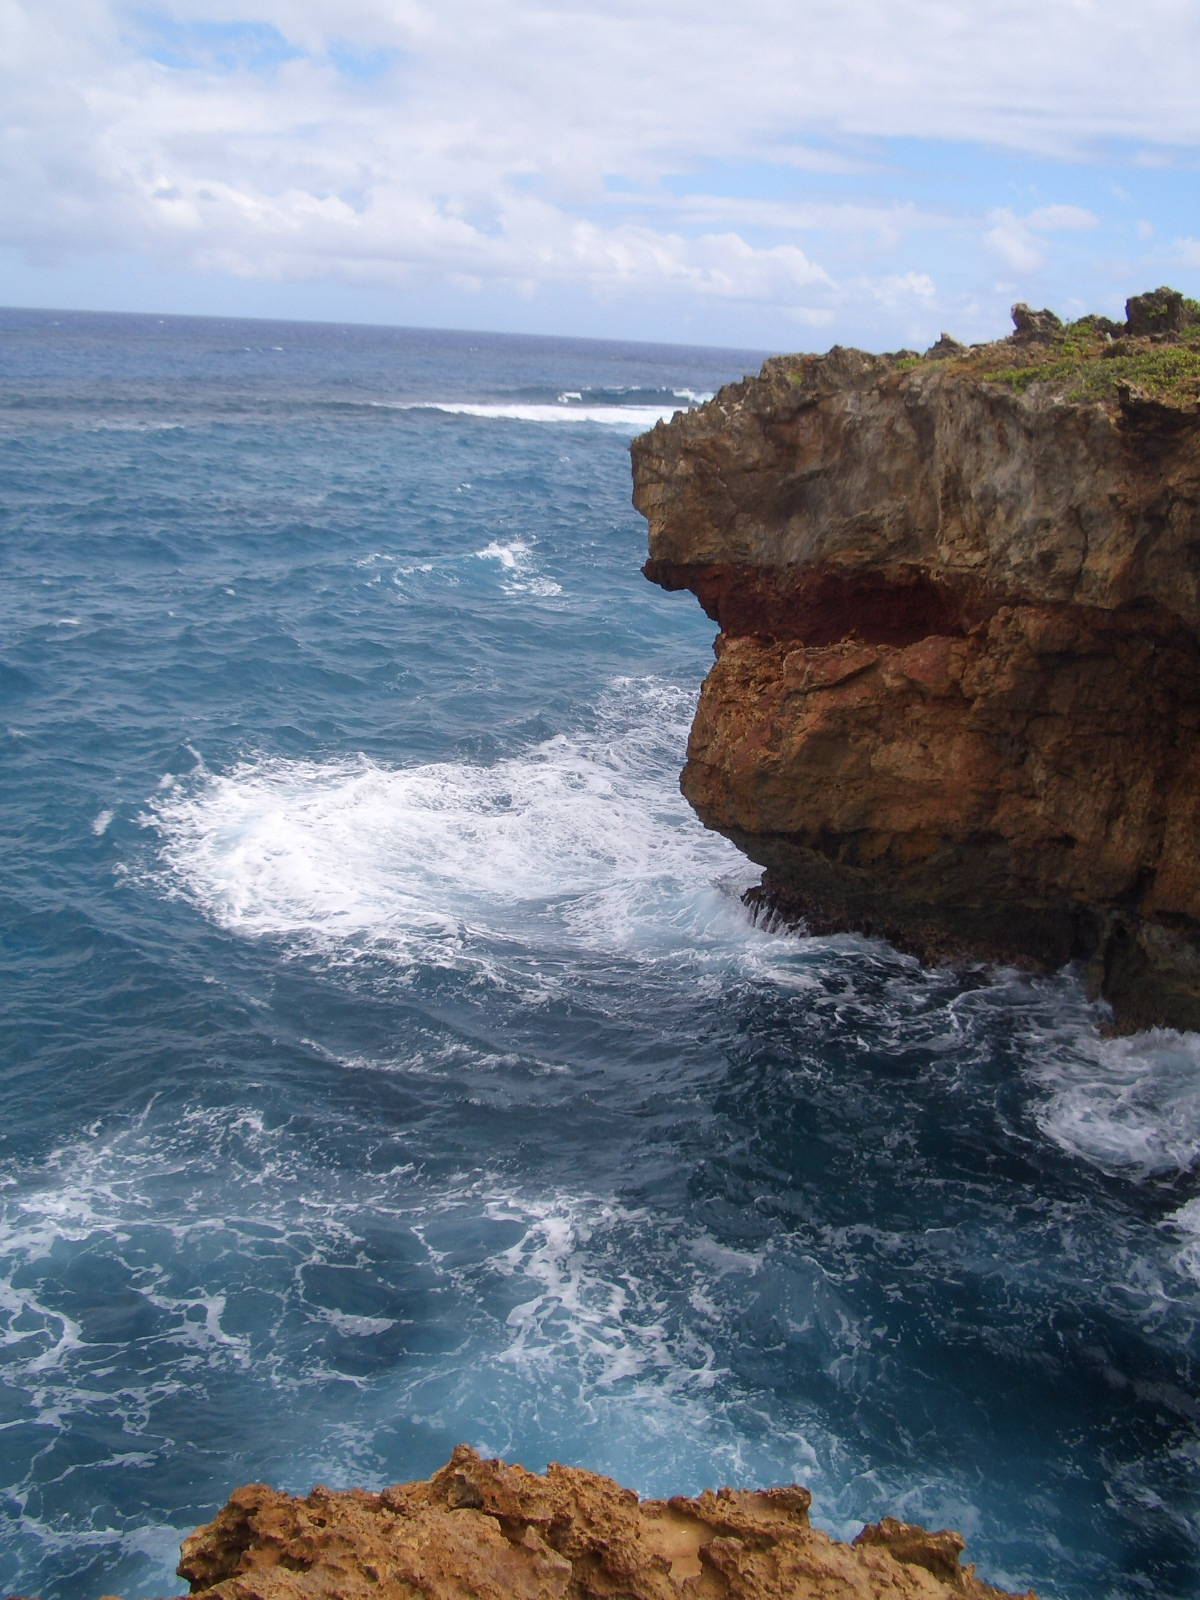 The South Side of Kauai - Poipu, Sunny Beaches, Clear Blue water